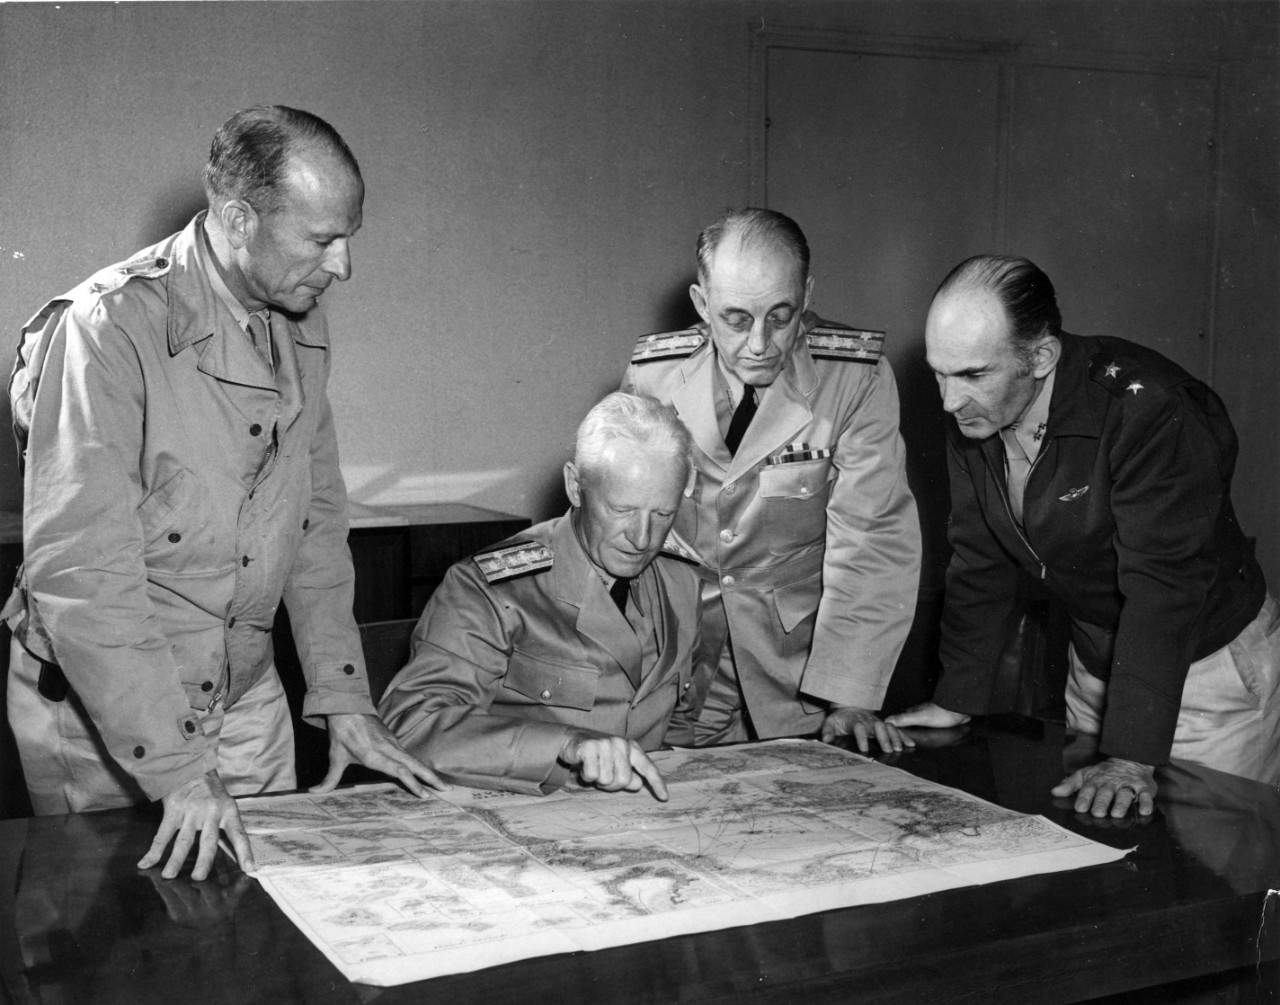 Admiral Chester W. Nimitz, USN, Commander in Chief Pacific Fleet and Pacific Ocean Areas confers with south Pacific area officers, possibly aboard USS Argonne (AG-31) at Noumea, New Caledonia, on 28 September 1942.